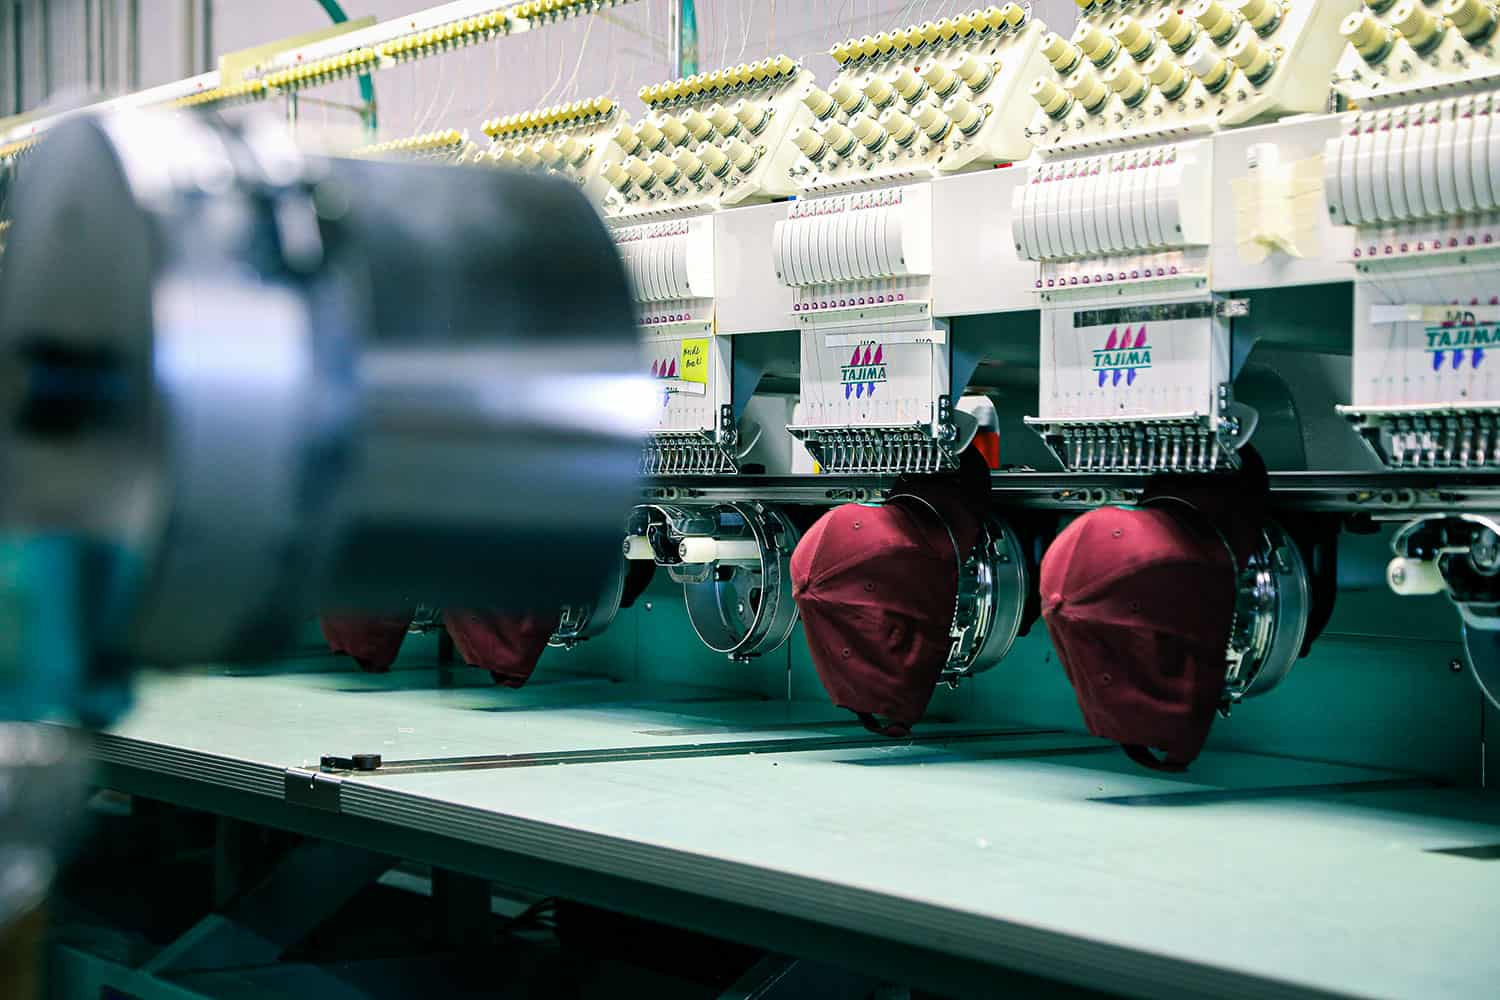 Large scale embroidery machines setup for contract embroidery